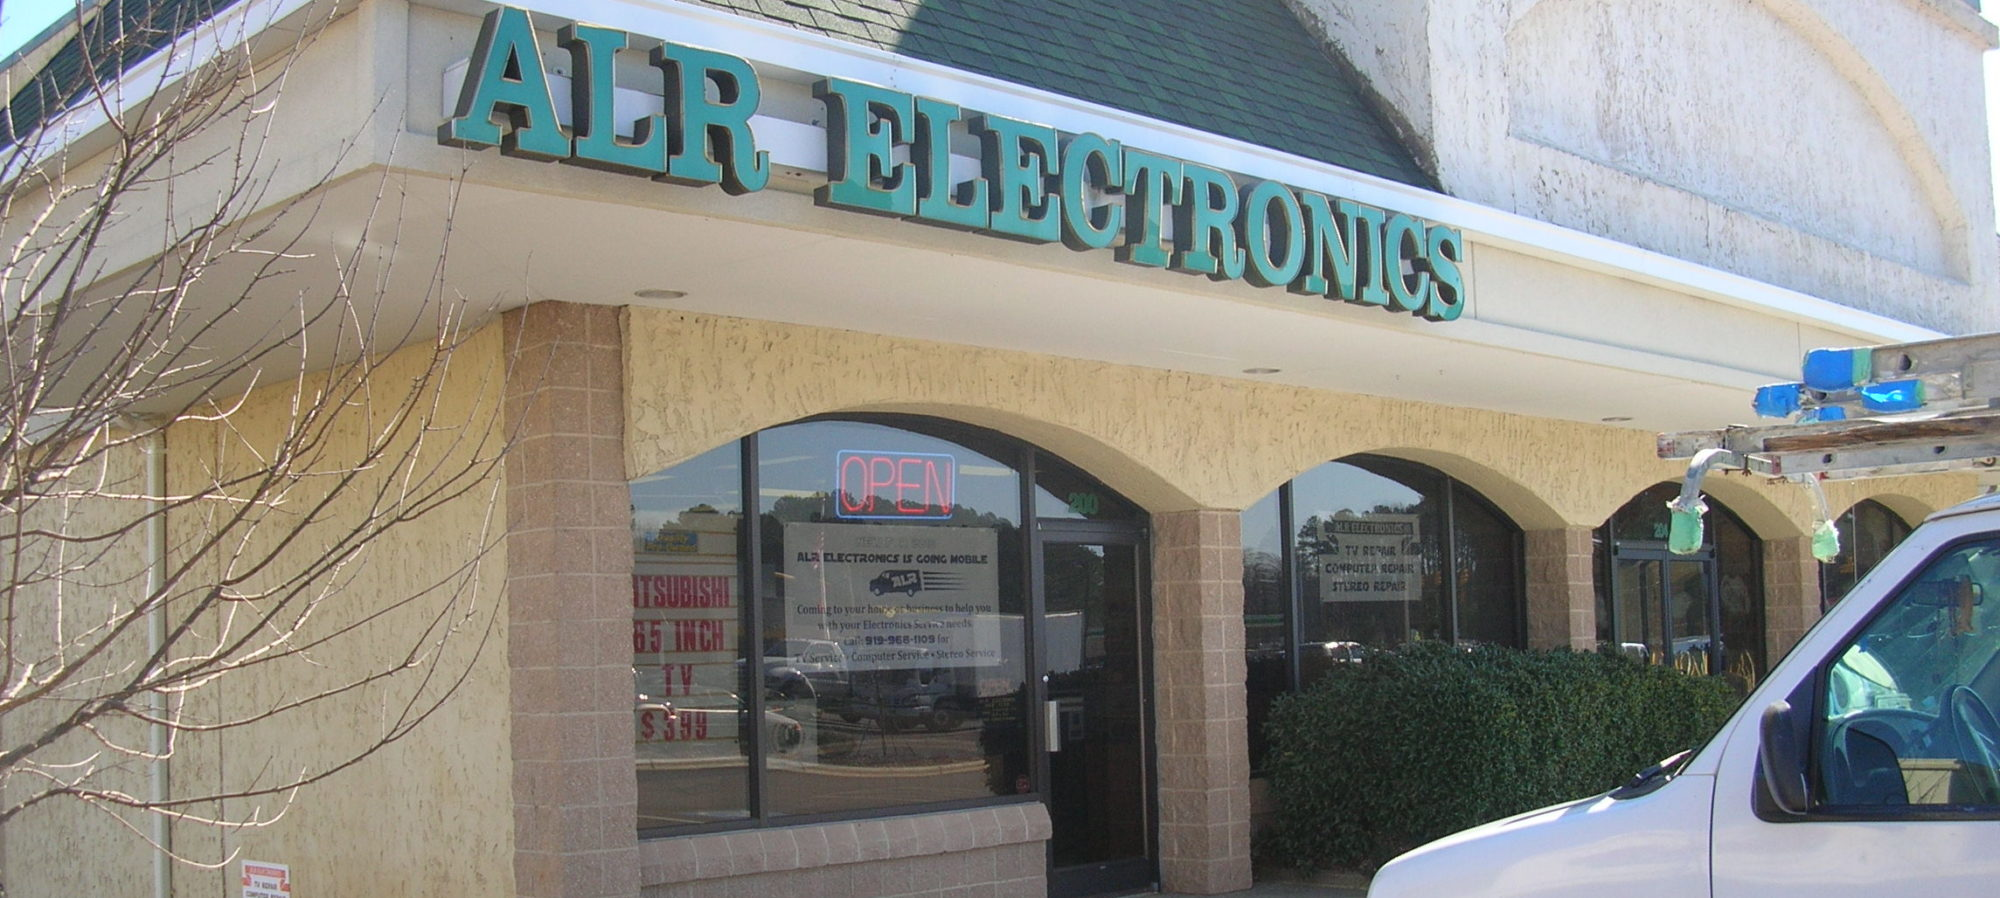 ALR Electronics * Call 919-968-1109 * Now offering FREE pick-up and delivery service to Chapel Hill, Carrboro & Pittsboro